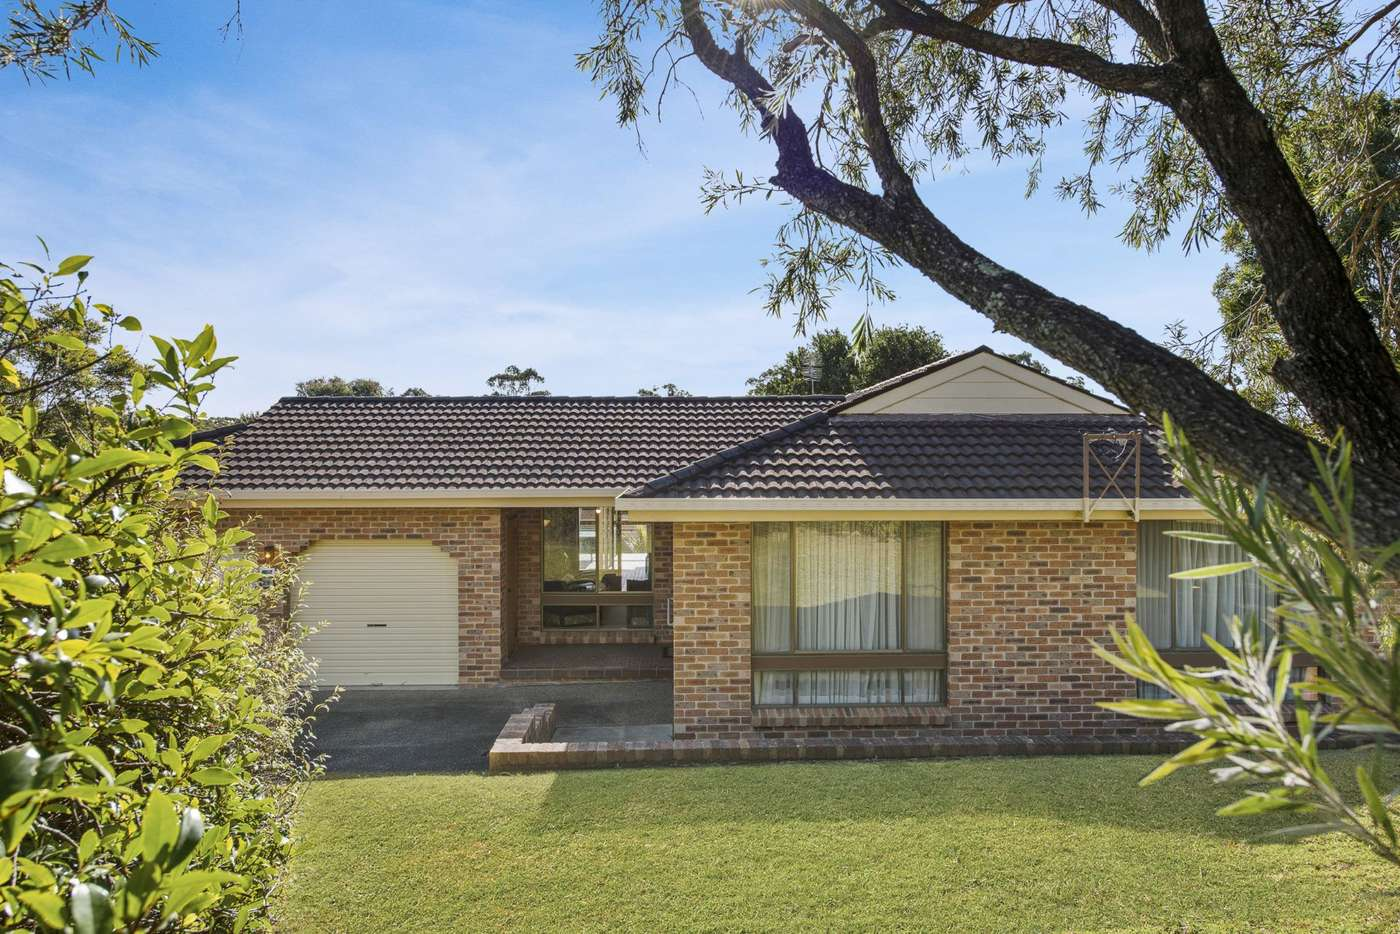 Main view of Homely house listing, 29 Buckland Street, Mollymook NSW 2539